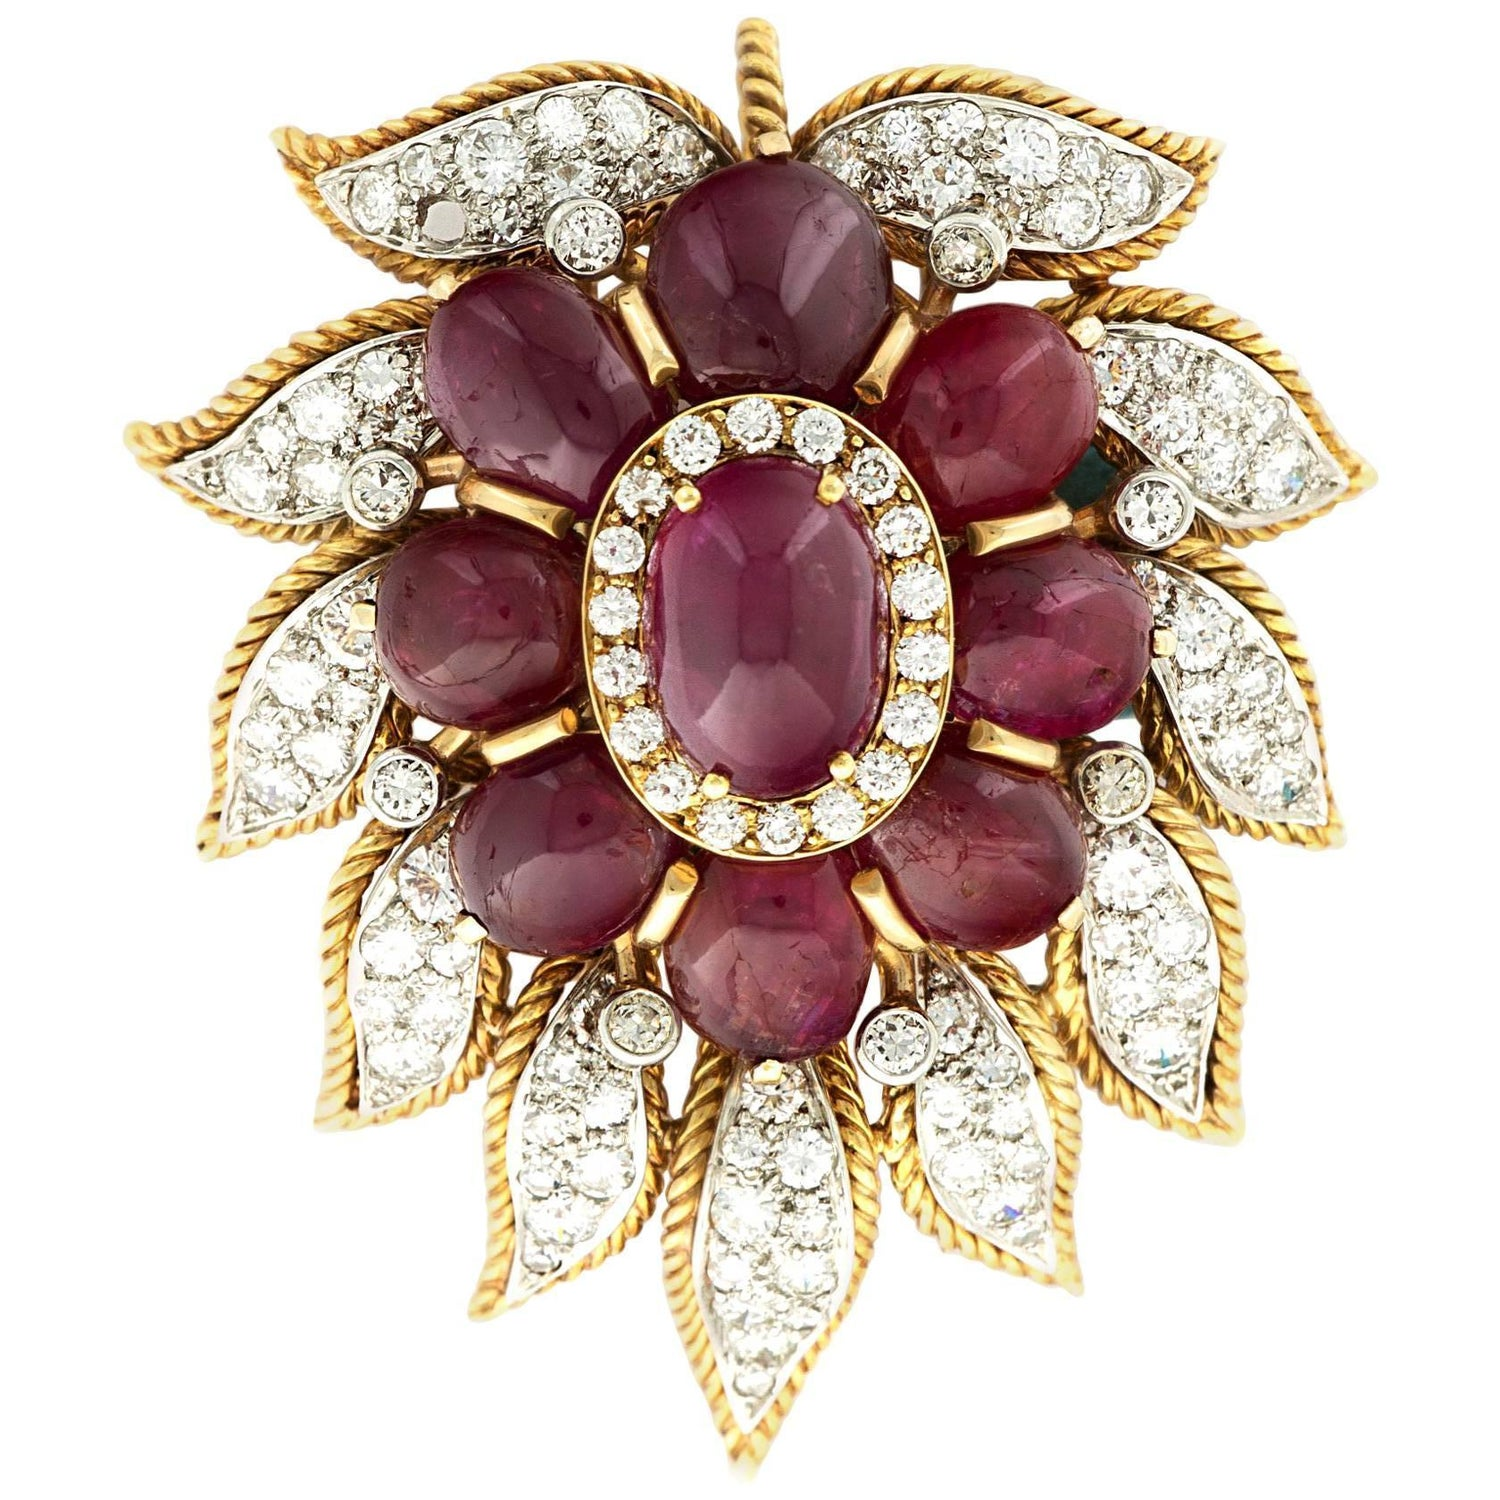 Van cleef amp arpels vca 18k yellow gold ruby cabochon amp diamond - Van Cleef Amp Arpels Paris Diamond Ruby Cabochon Gold Leaf Brooch